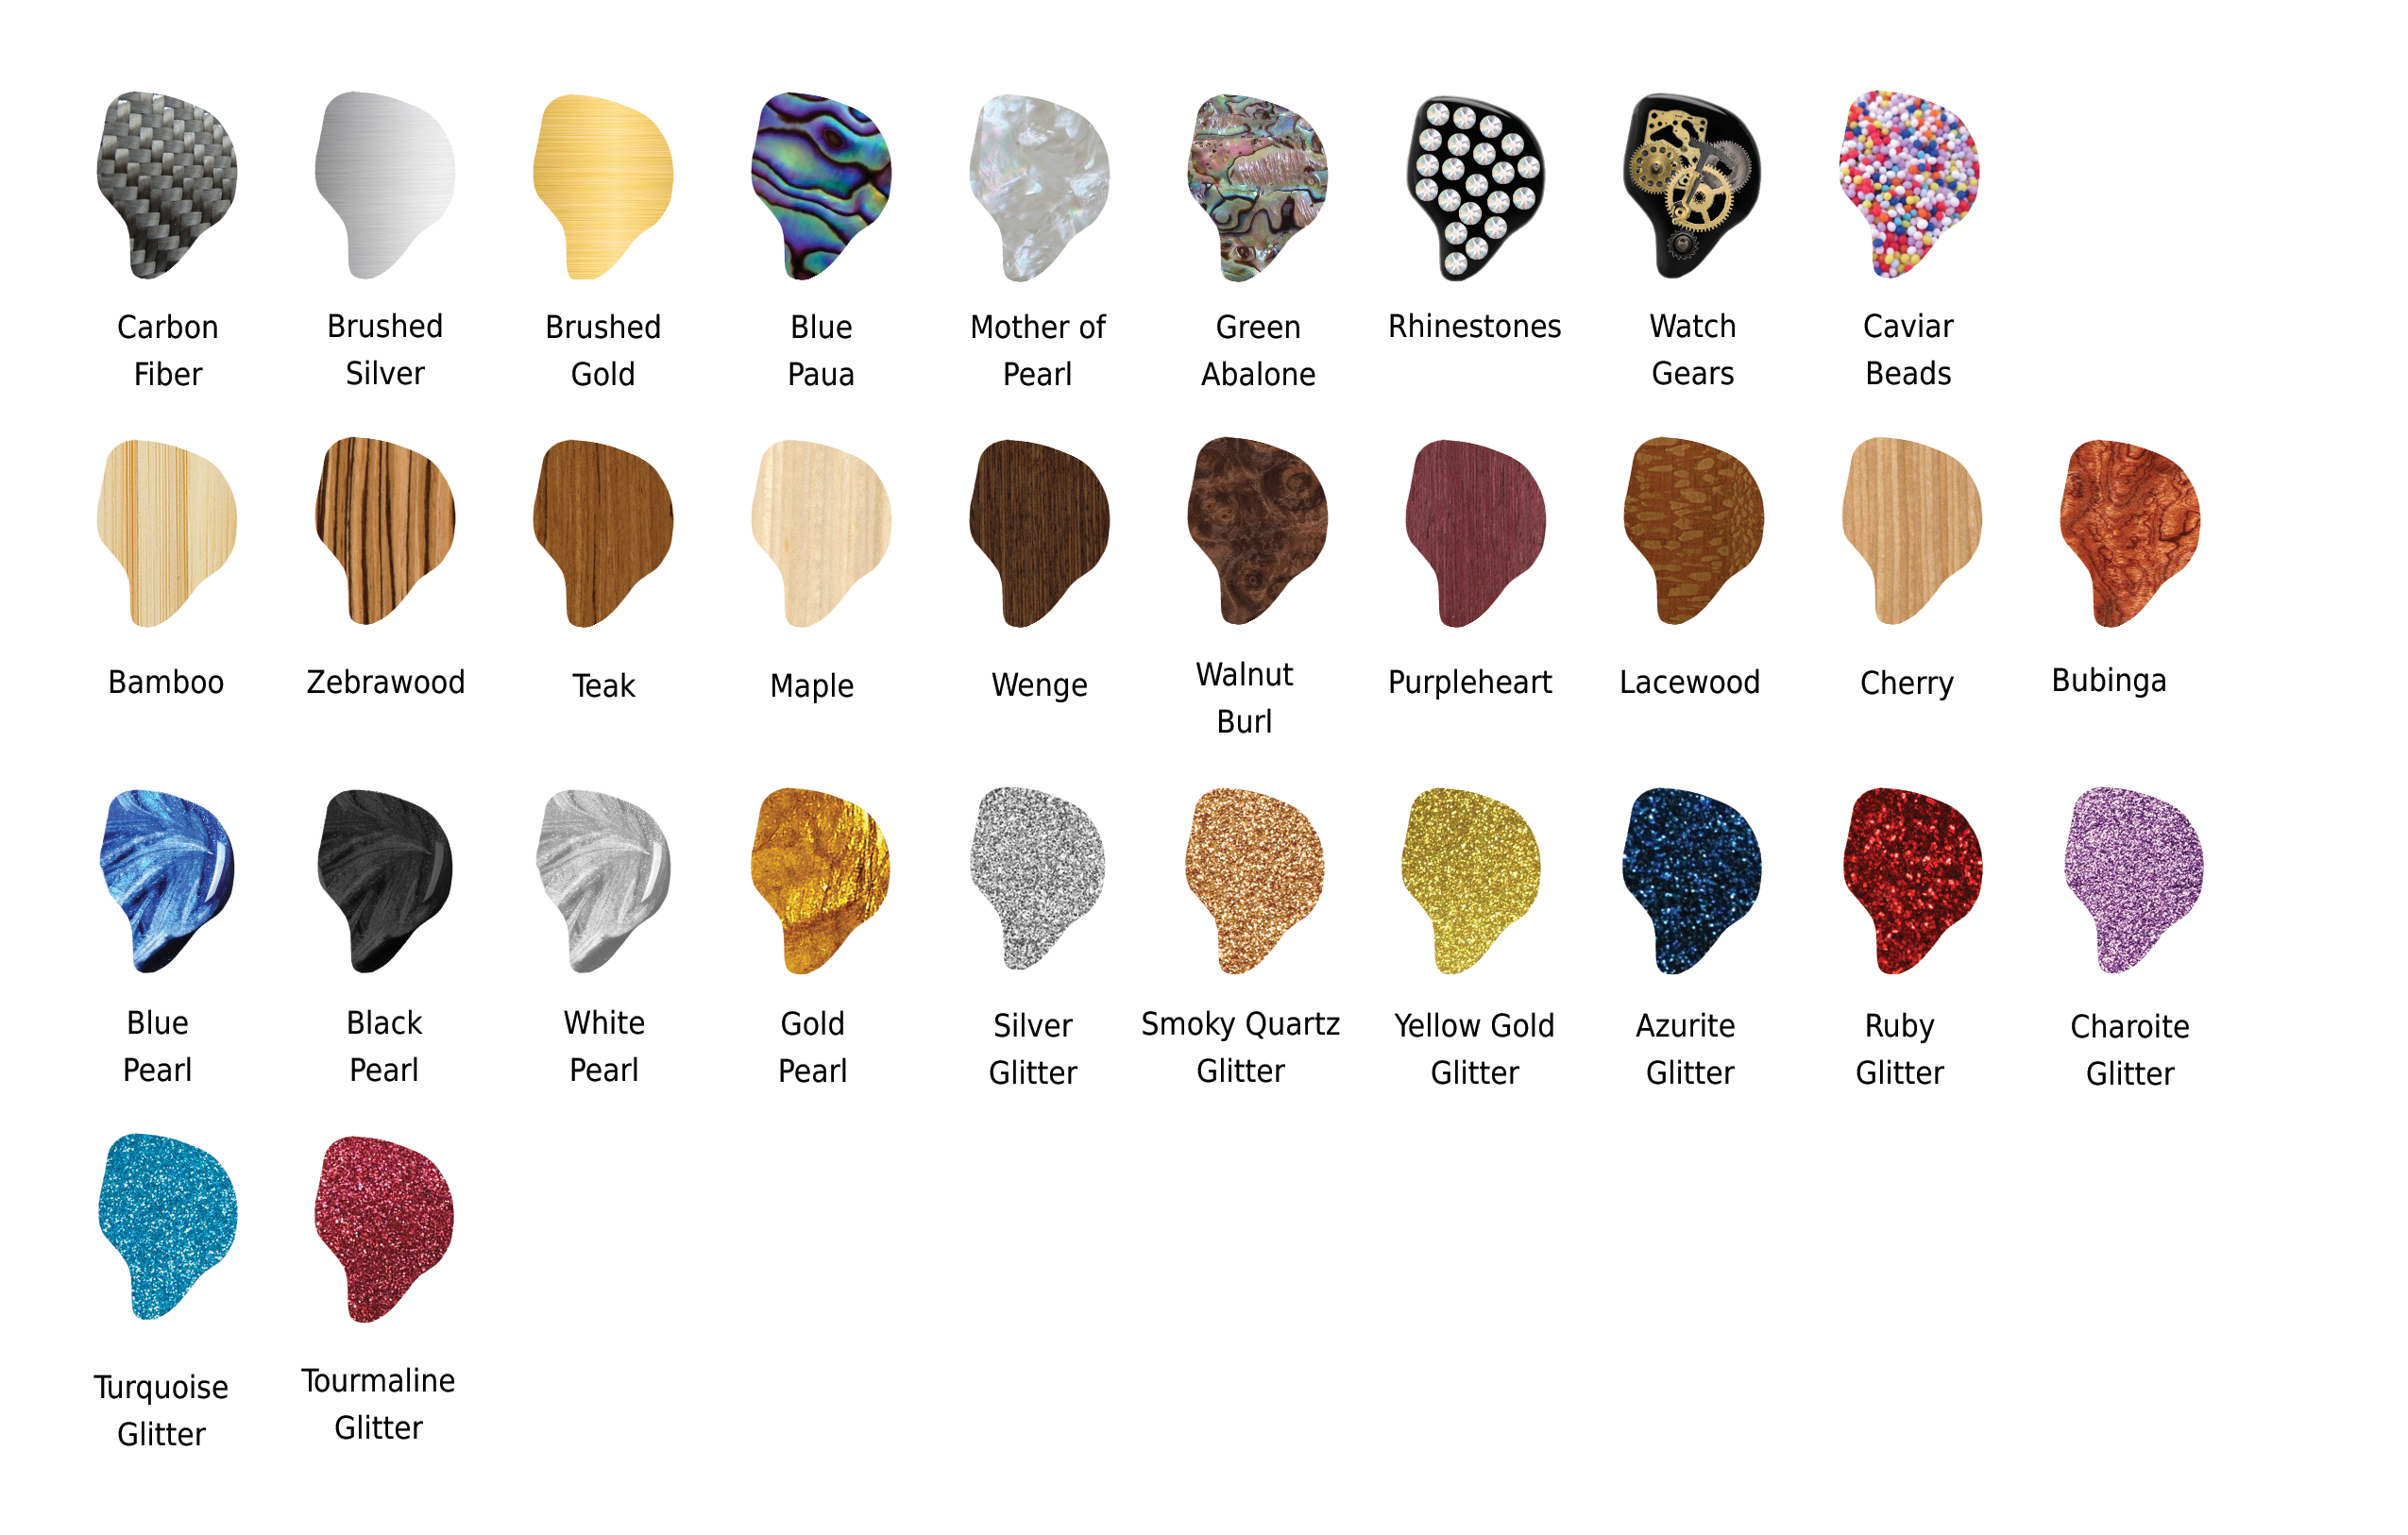 Faceplate colors